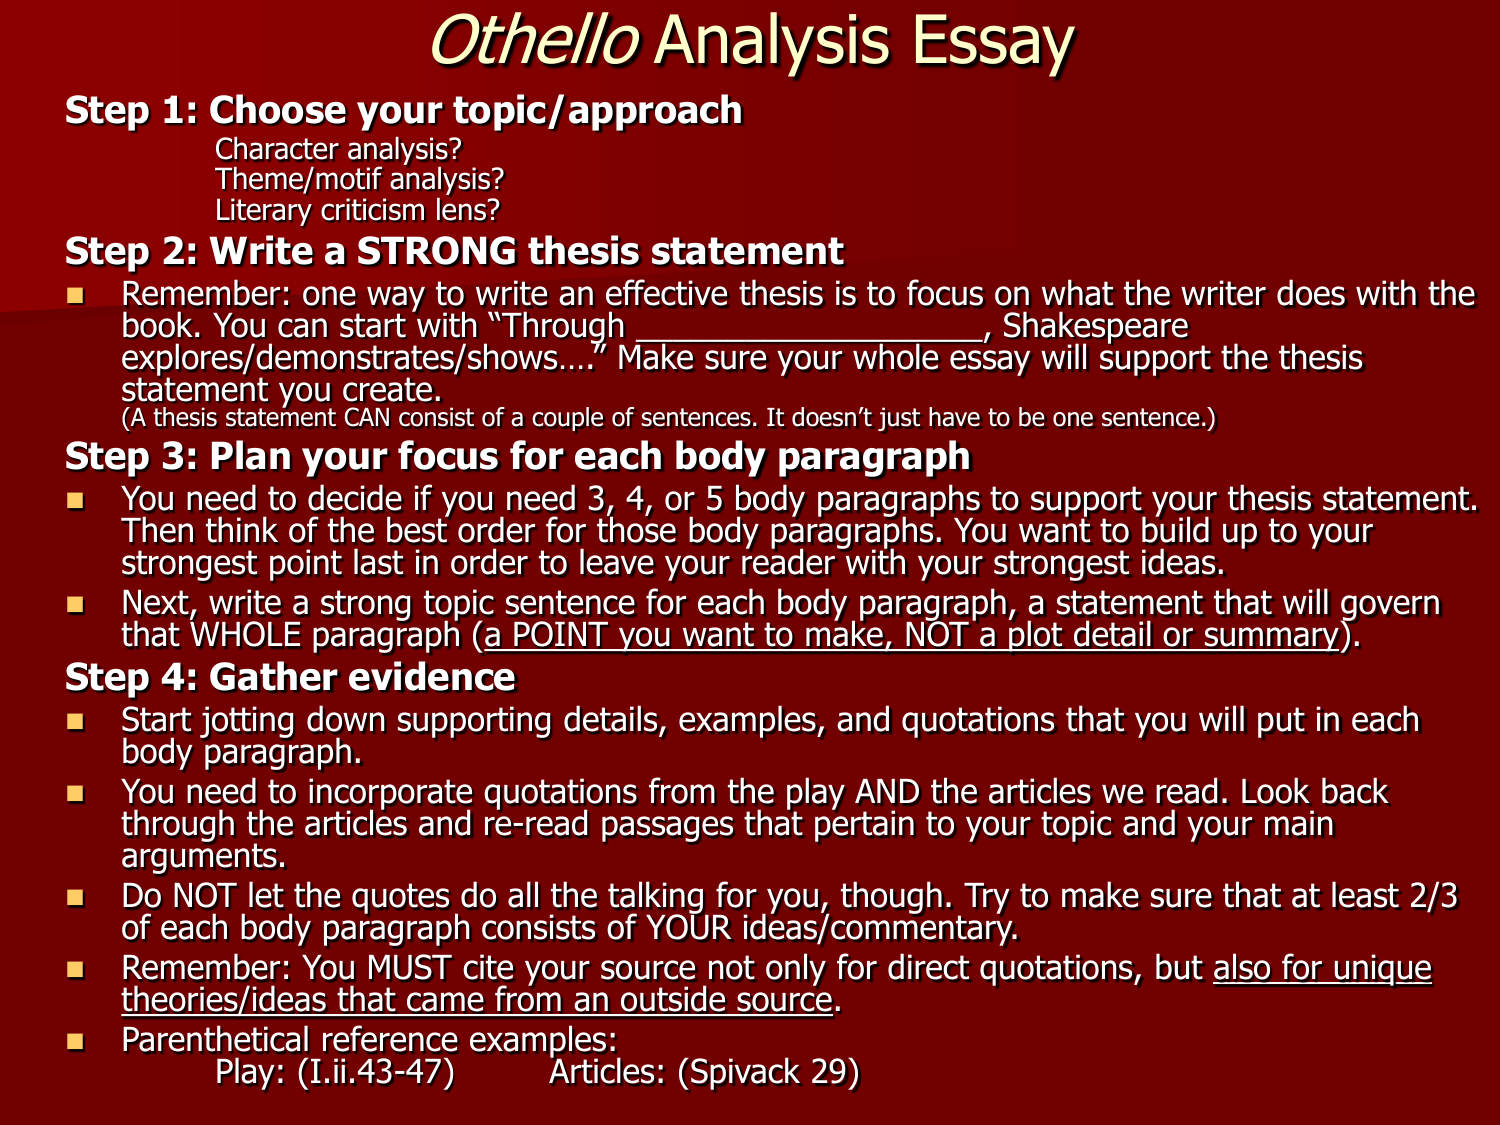 Othello Analysis Essay Planningwriting Steps  Essay On Modern Science also Business Management Essays  Psychology As A Science Essay